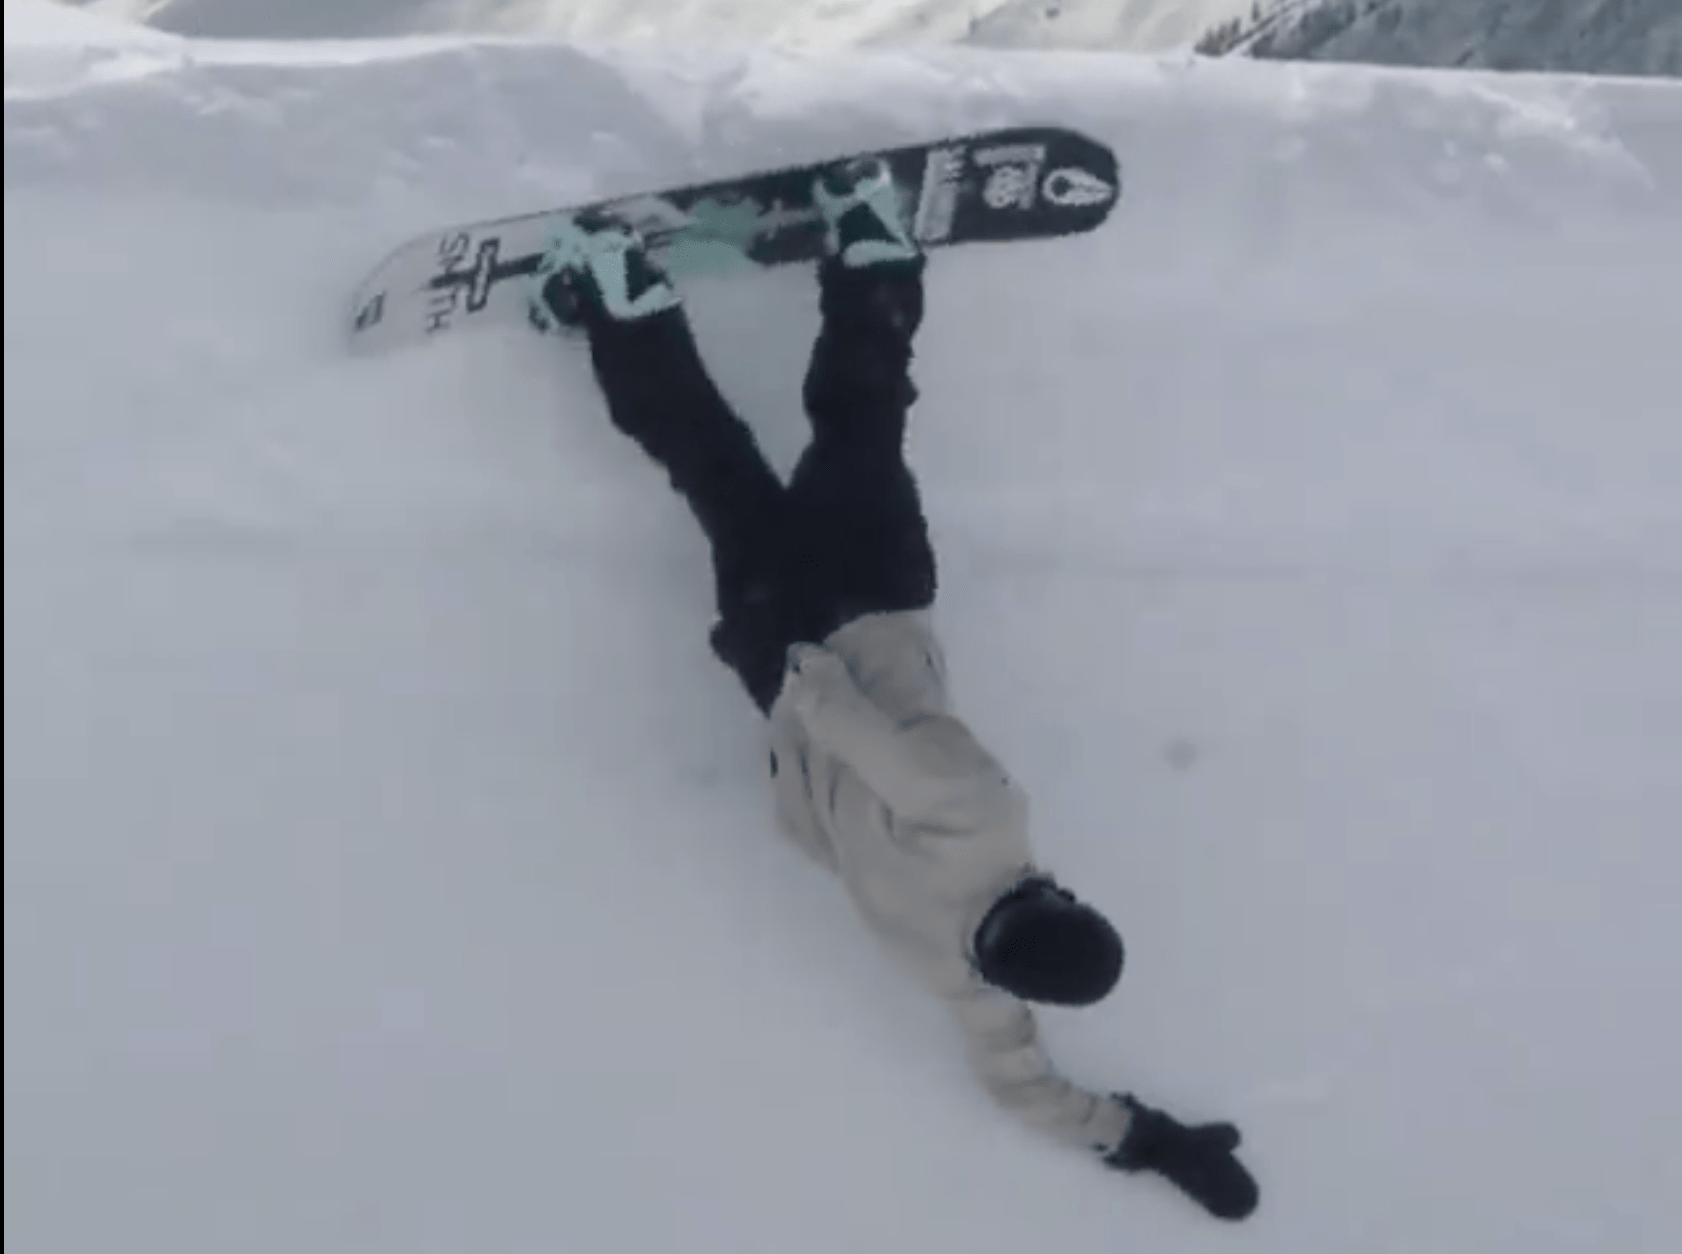 snowboarding fall, snowboard, hold my beer